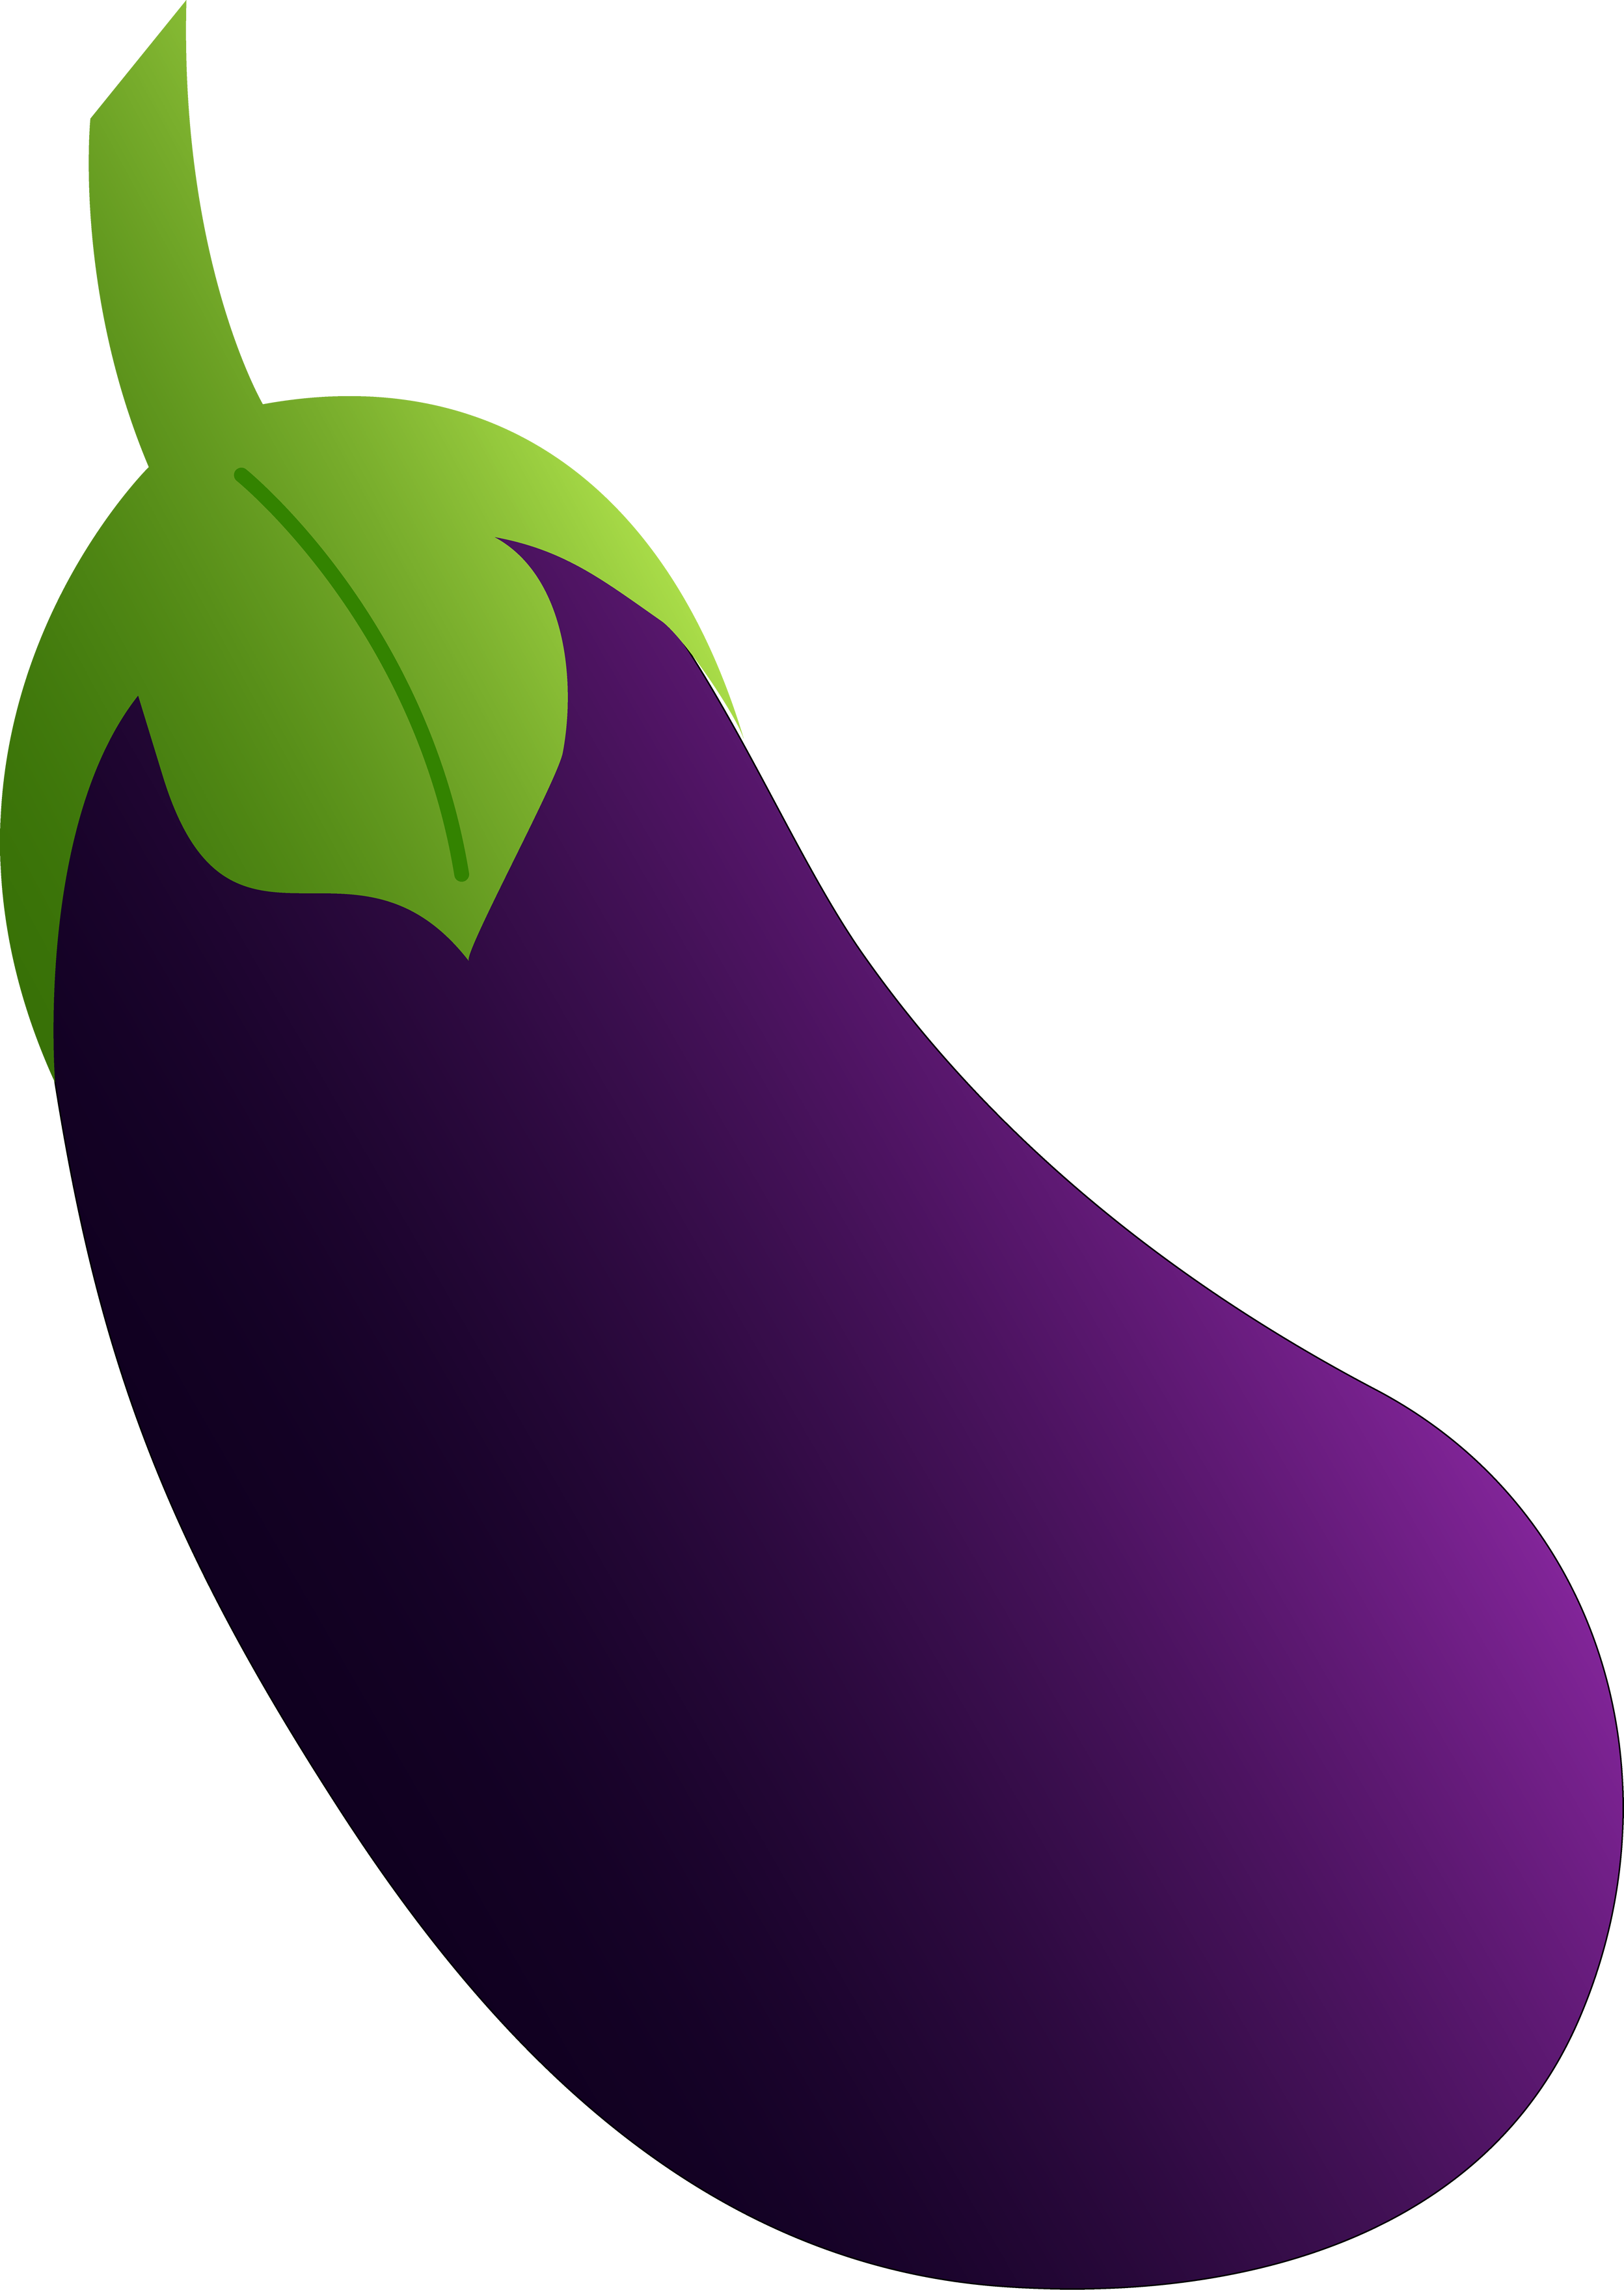 Eggplant Png Image Clip Art Free Clip Art Art Drawings For Kids